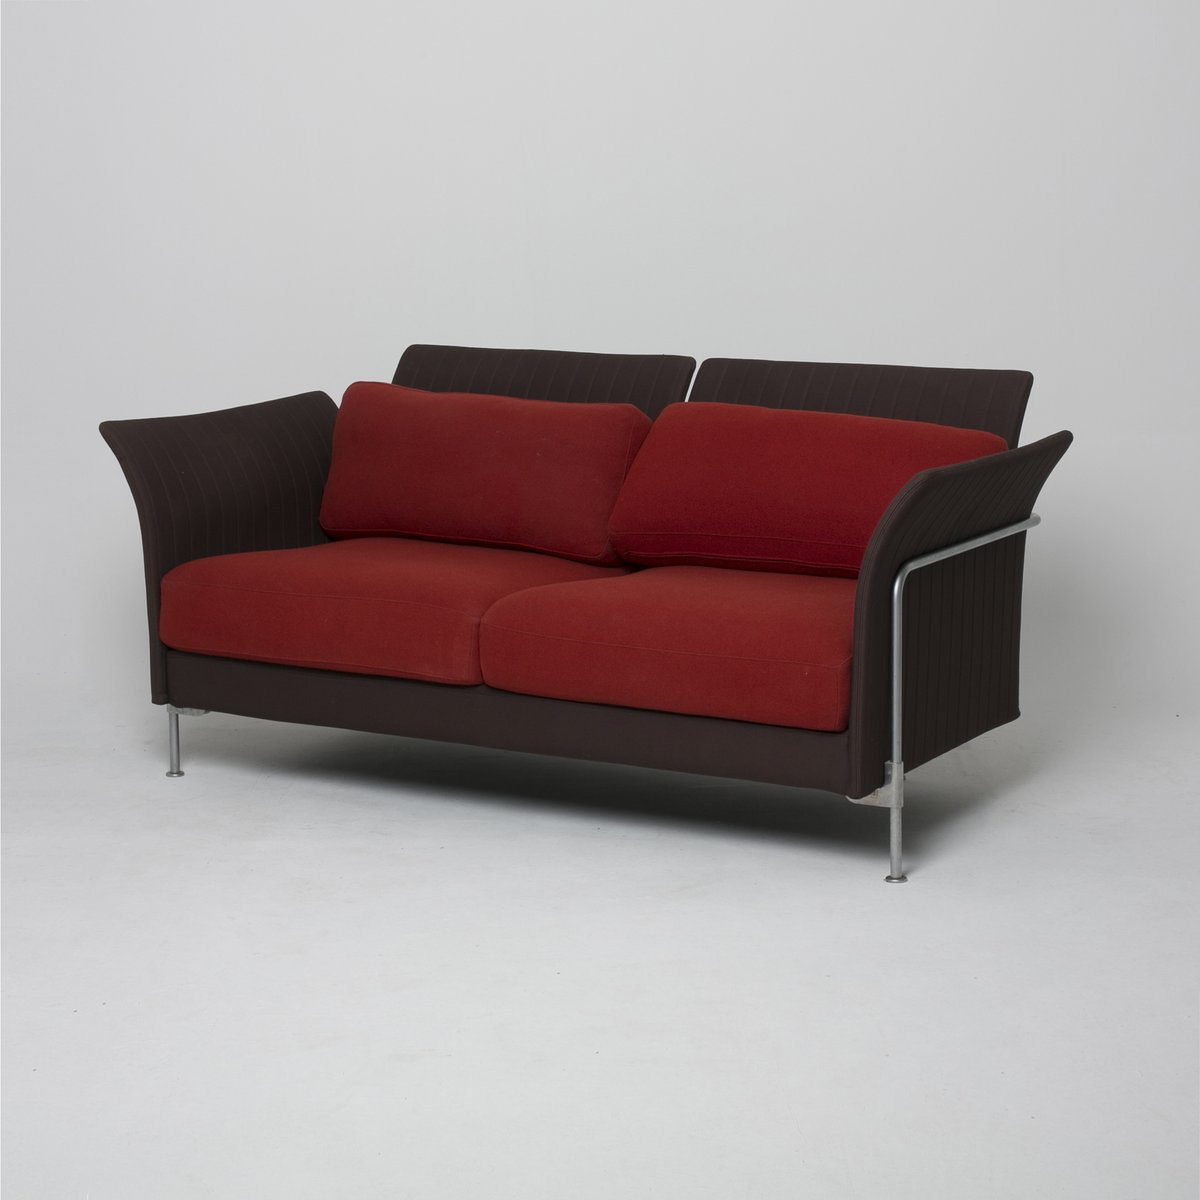 Canap sofa by ronan erwan bouroullec for vitra for sale for Canape maker